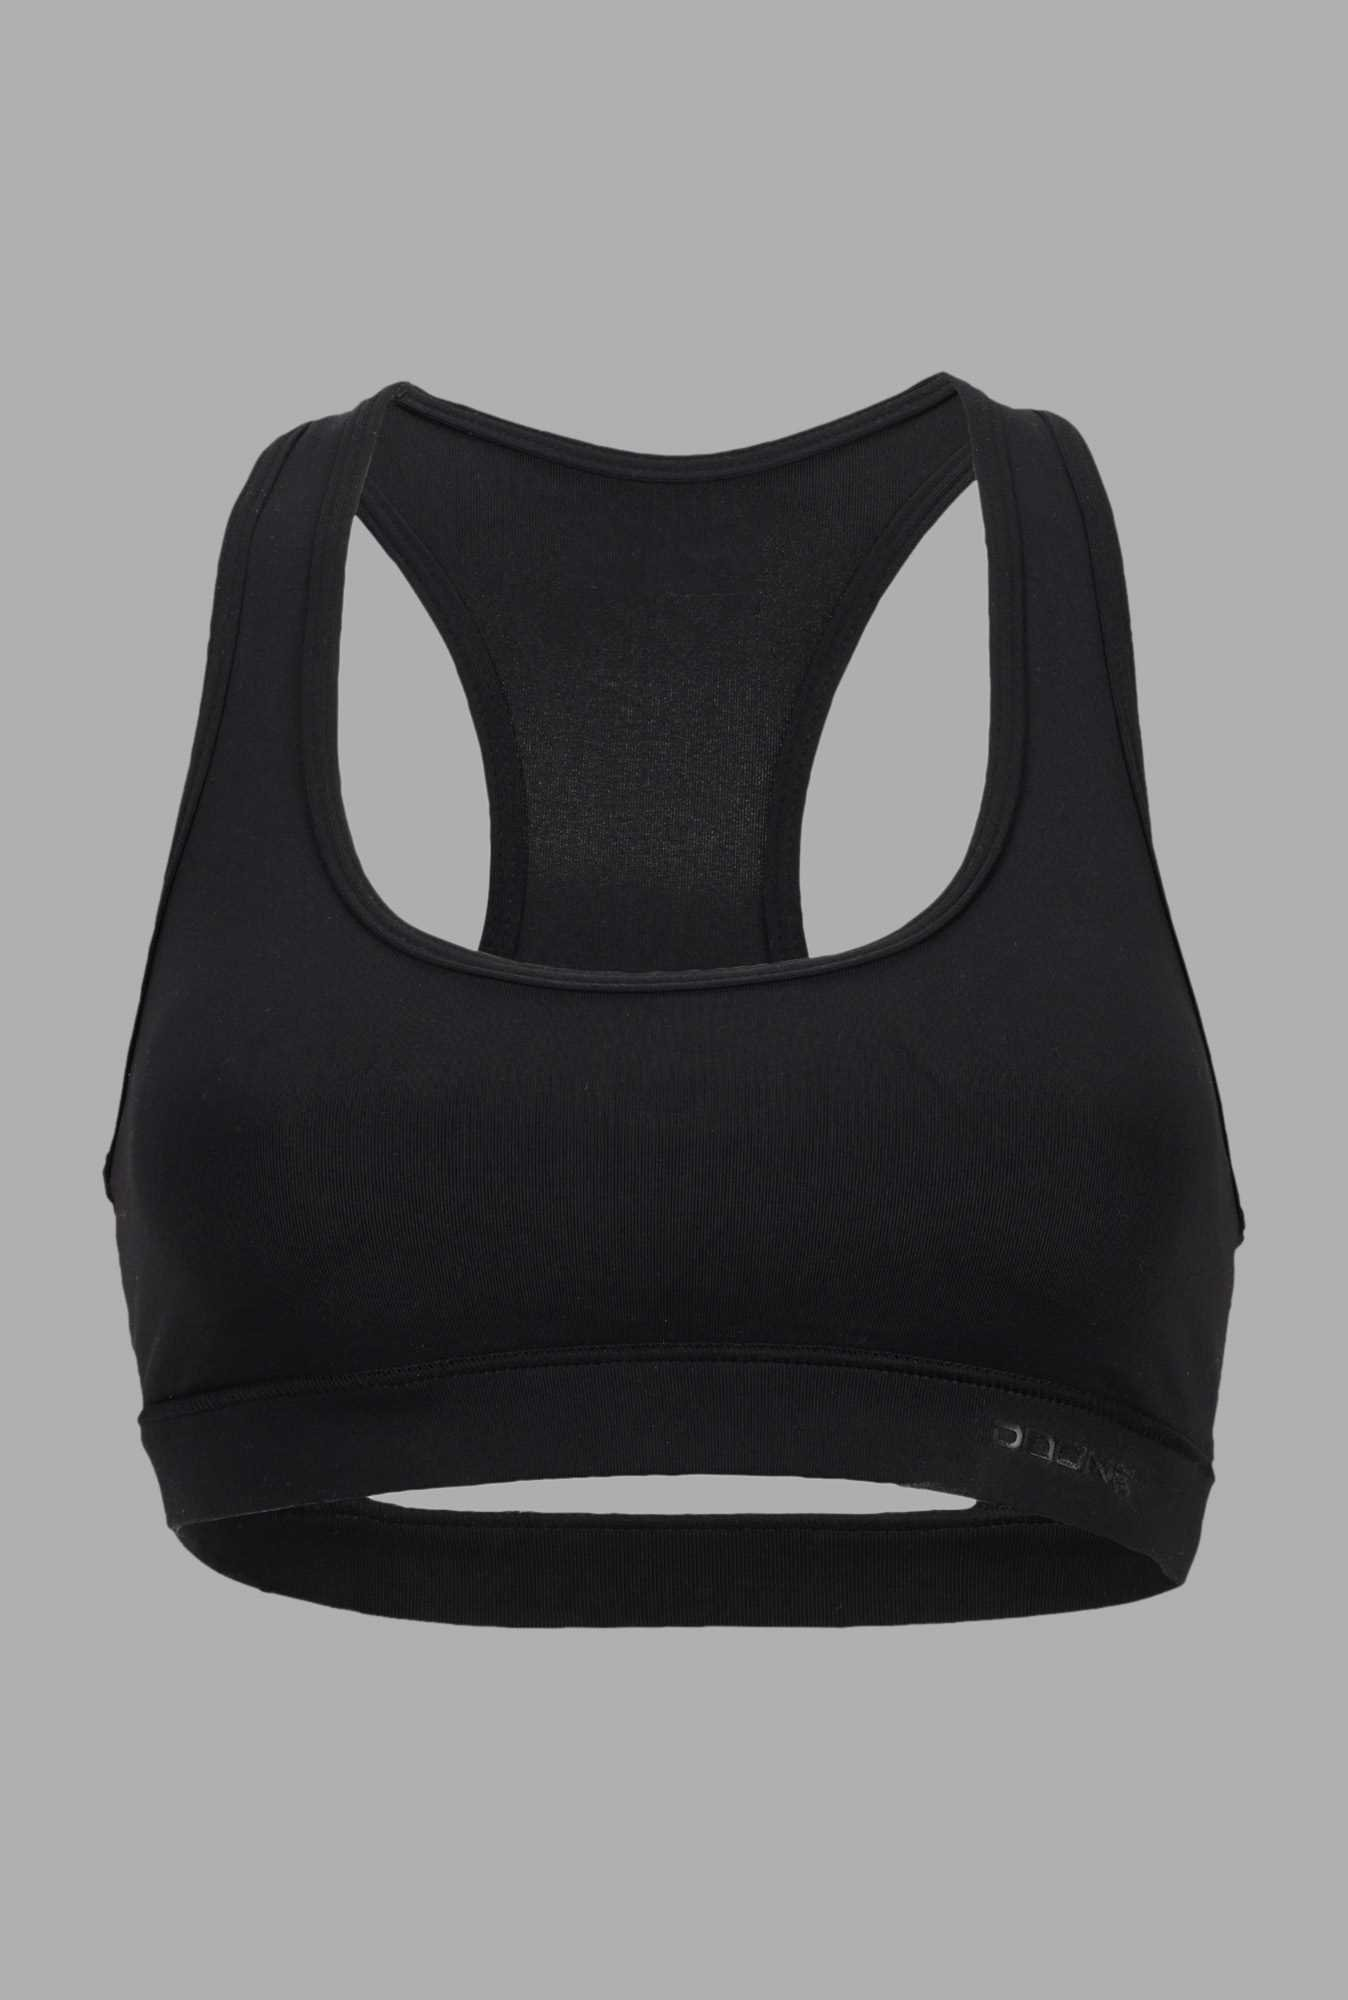 Doone Black Solid Slim Fit Training Sports Top